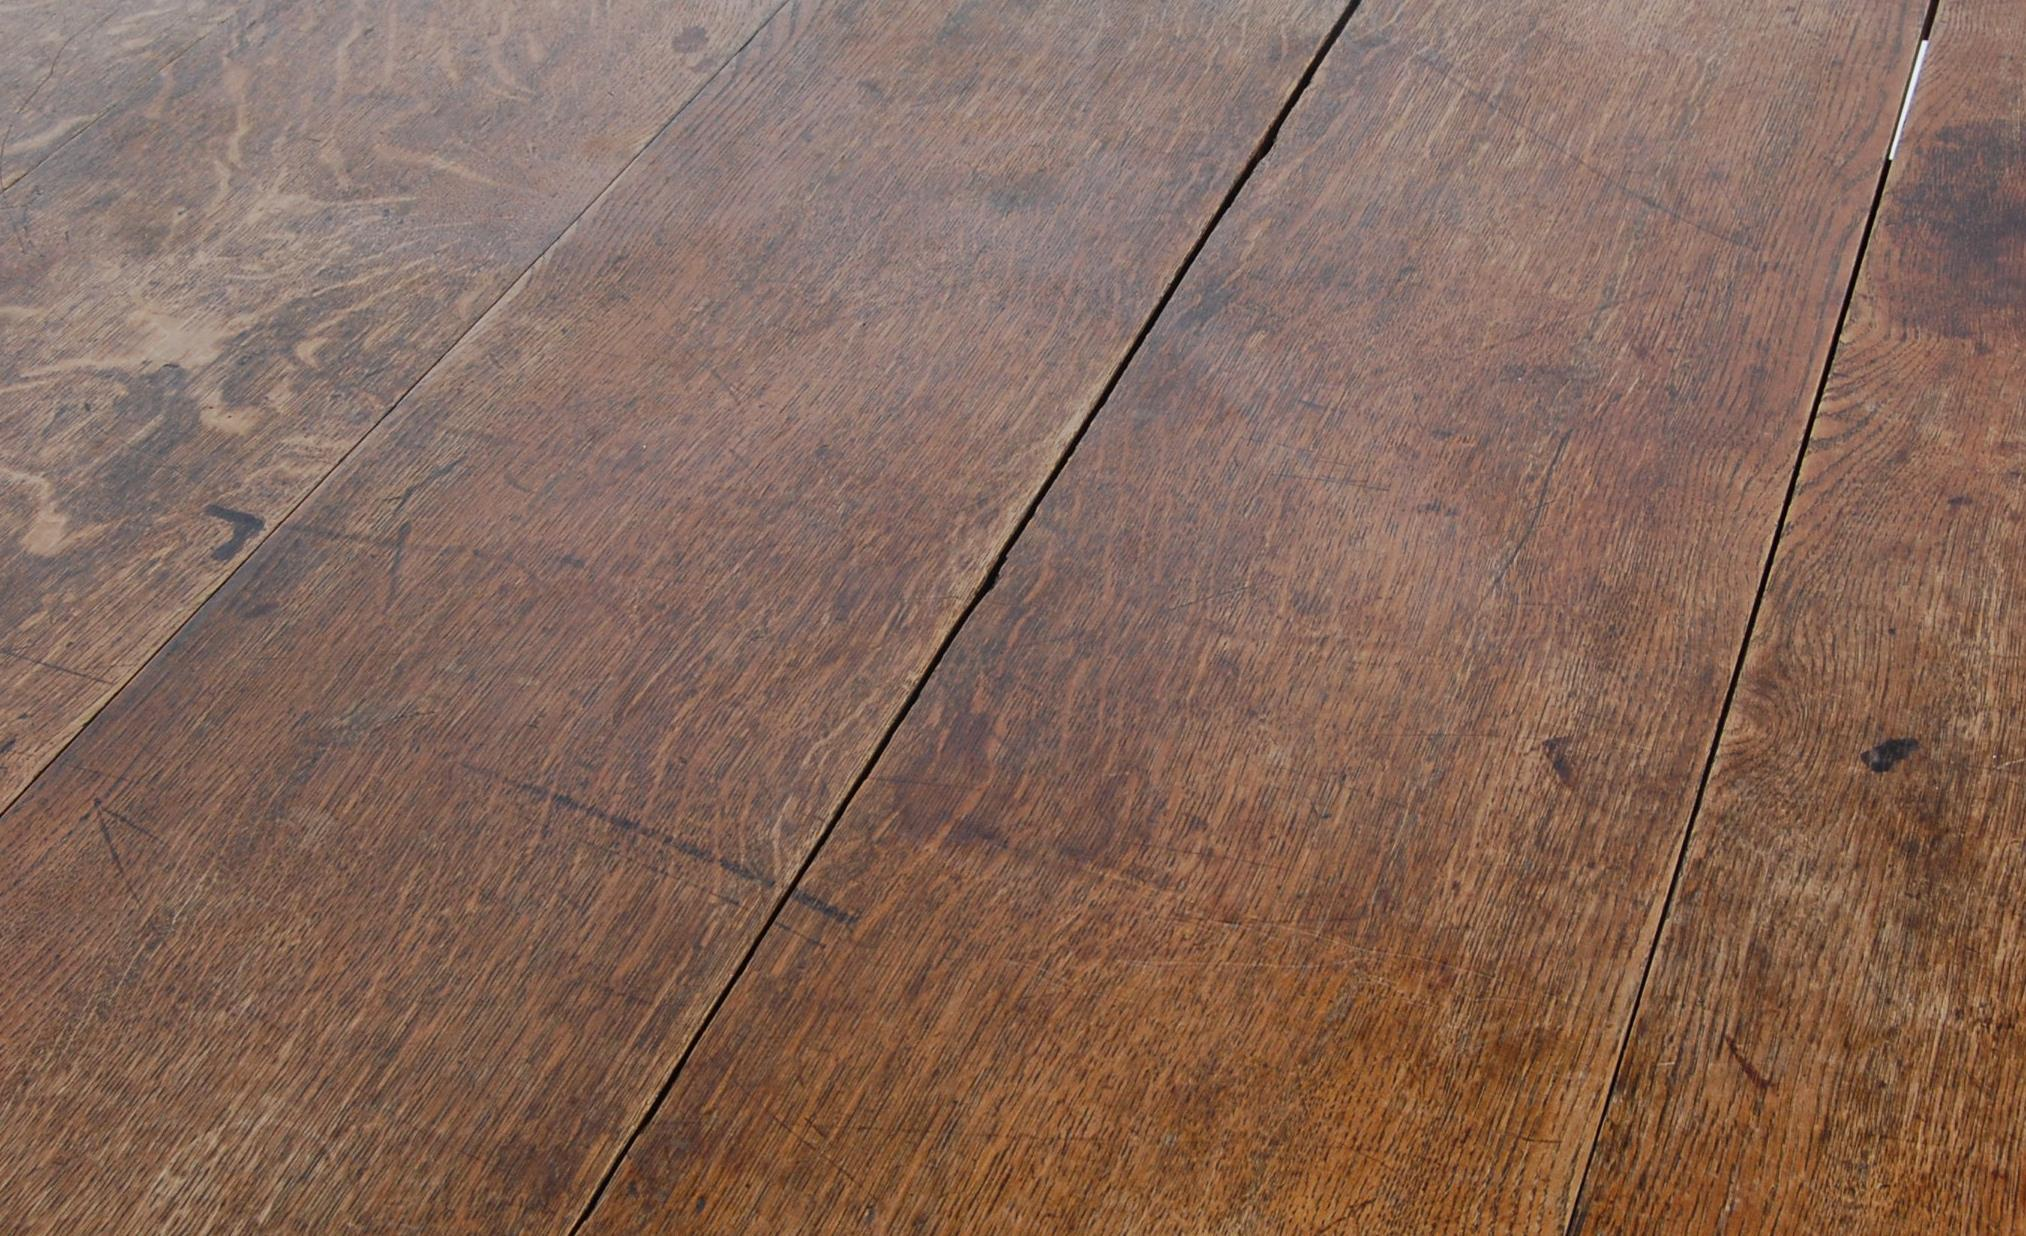 19TH CENTURY VICTORIAN OAK EXTENDING DINING TABLE - Image 5 of 7